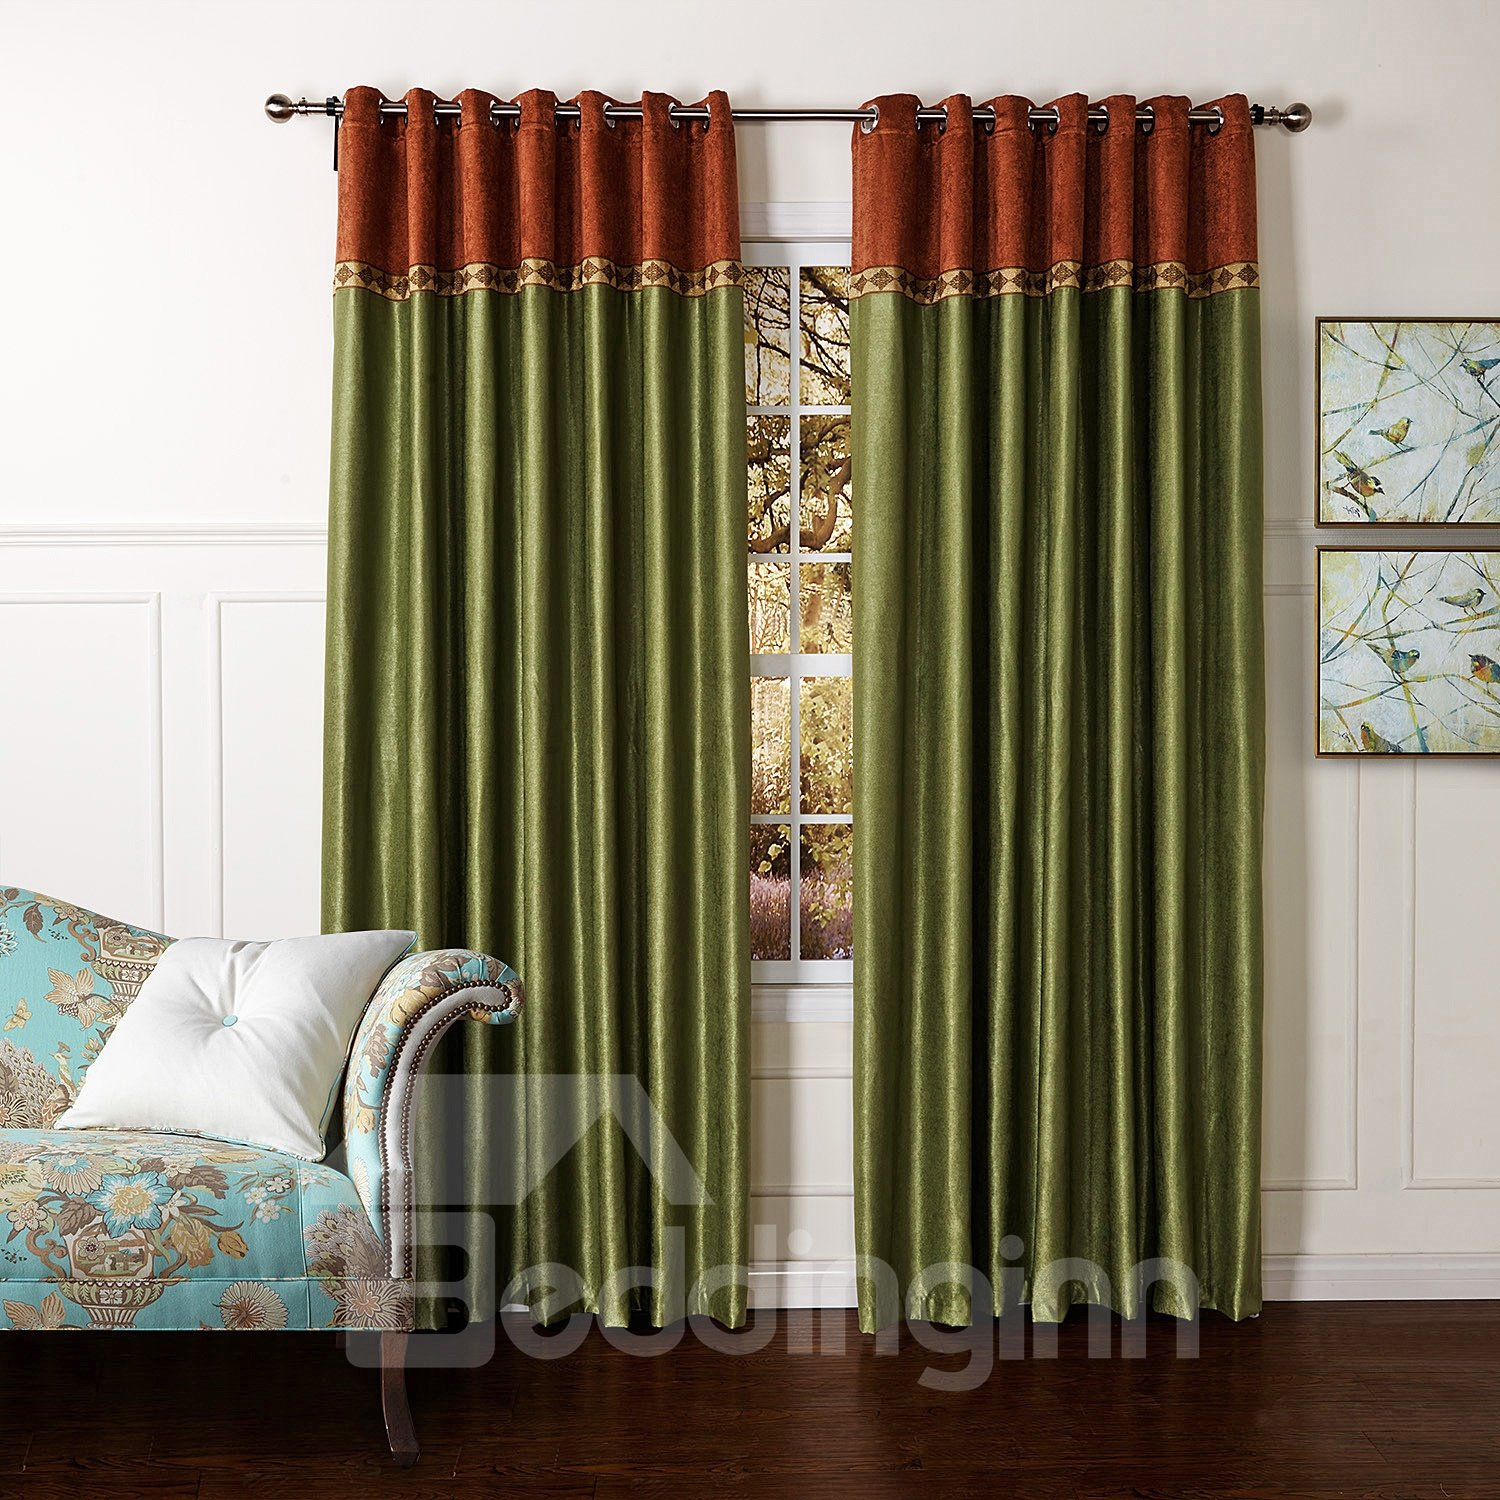 New Style Pretty Green Granular Villus Custom Curtain